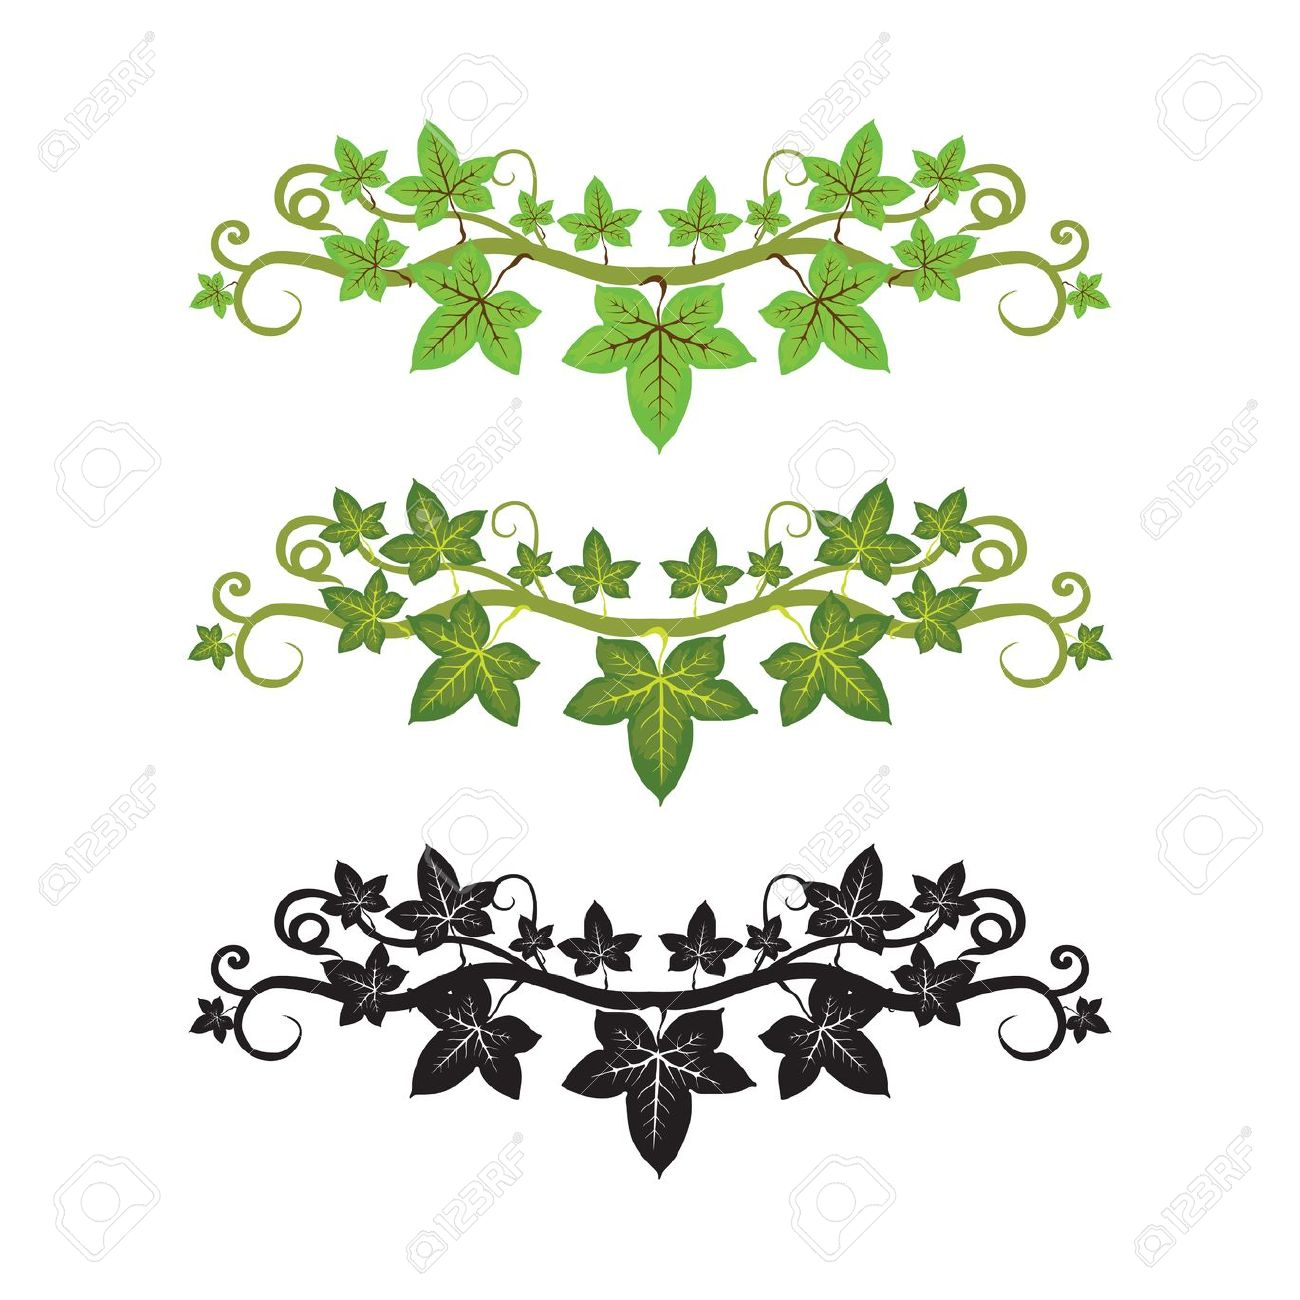 Ivy clipart #19, Download drawings